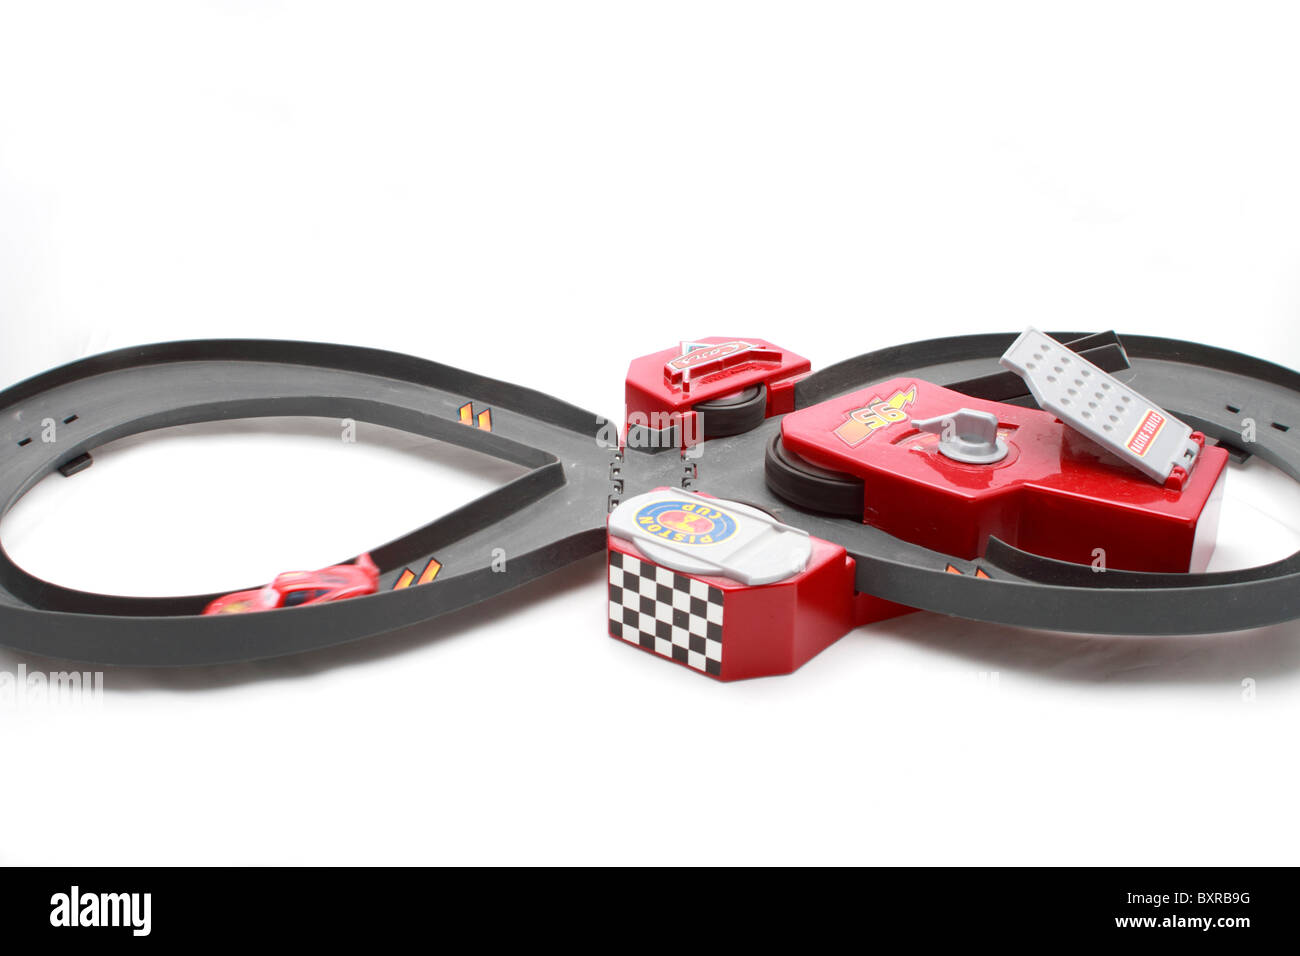 lightning mcqueen race car and battery powered racetrack toy based on stock photo royalty free. Black Bedroom Furniture Sets. Home Design Ideas